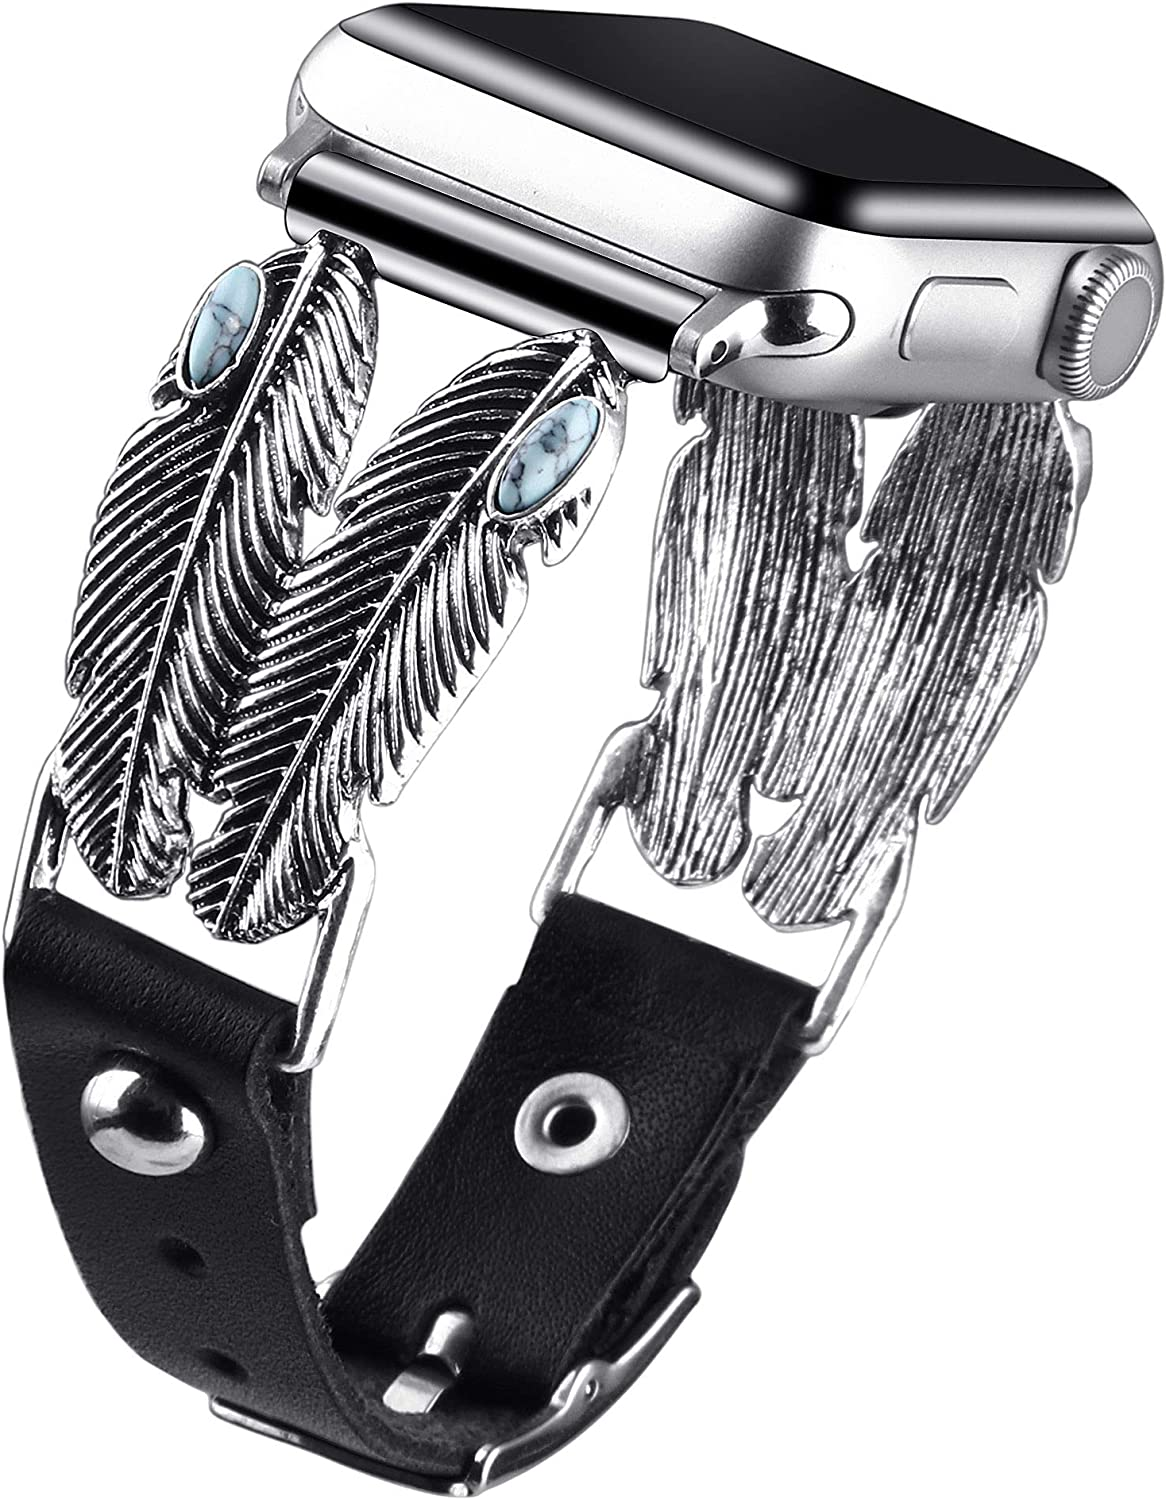 vikoros Jewelry Band Compatible with Apple Watch Bands' 38mm 40mm 42mm 44mm iWatch Series 6/5/4/3/2/1 SE Women Mens, Vintage Metal Dressy Bracelets Bling Leather Wristband Strap Accessories